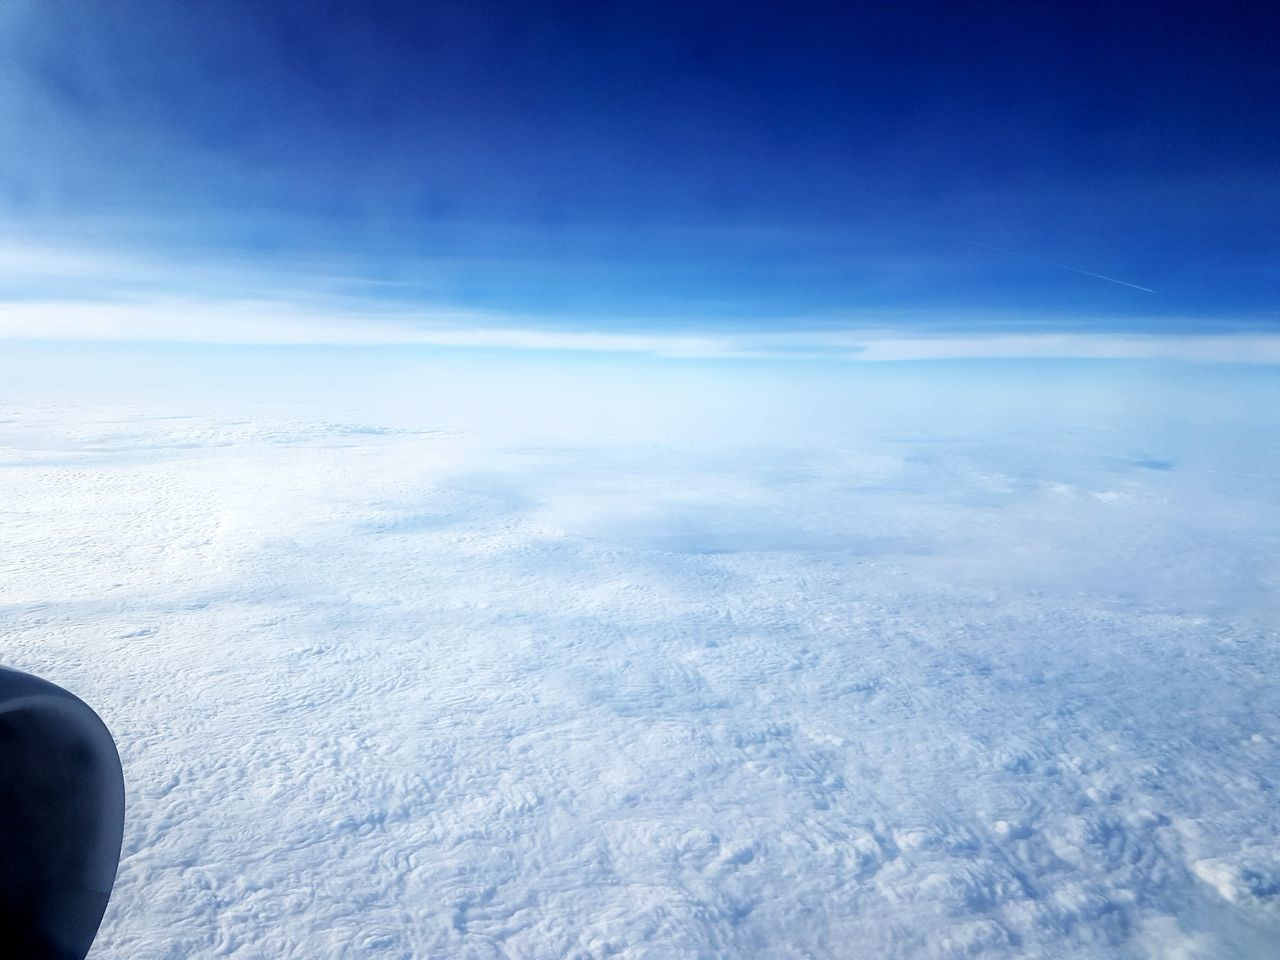 Flying High Blue Aerial View Sky Cloud - Sky Scenics Nature Beauty In Nature Tranquil Scene Tranquility Landscape Day No People Outdoors Plane View Skyblue Sky And Clouds Himmelblau Himmel Und Wolken Himmel Nature Dramatic Sky Non-urban Scene Plane Window Planeview